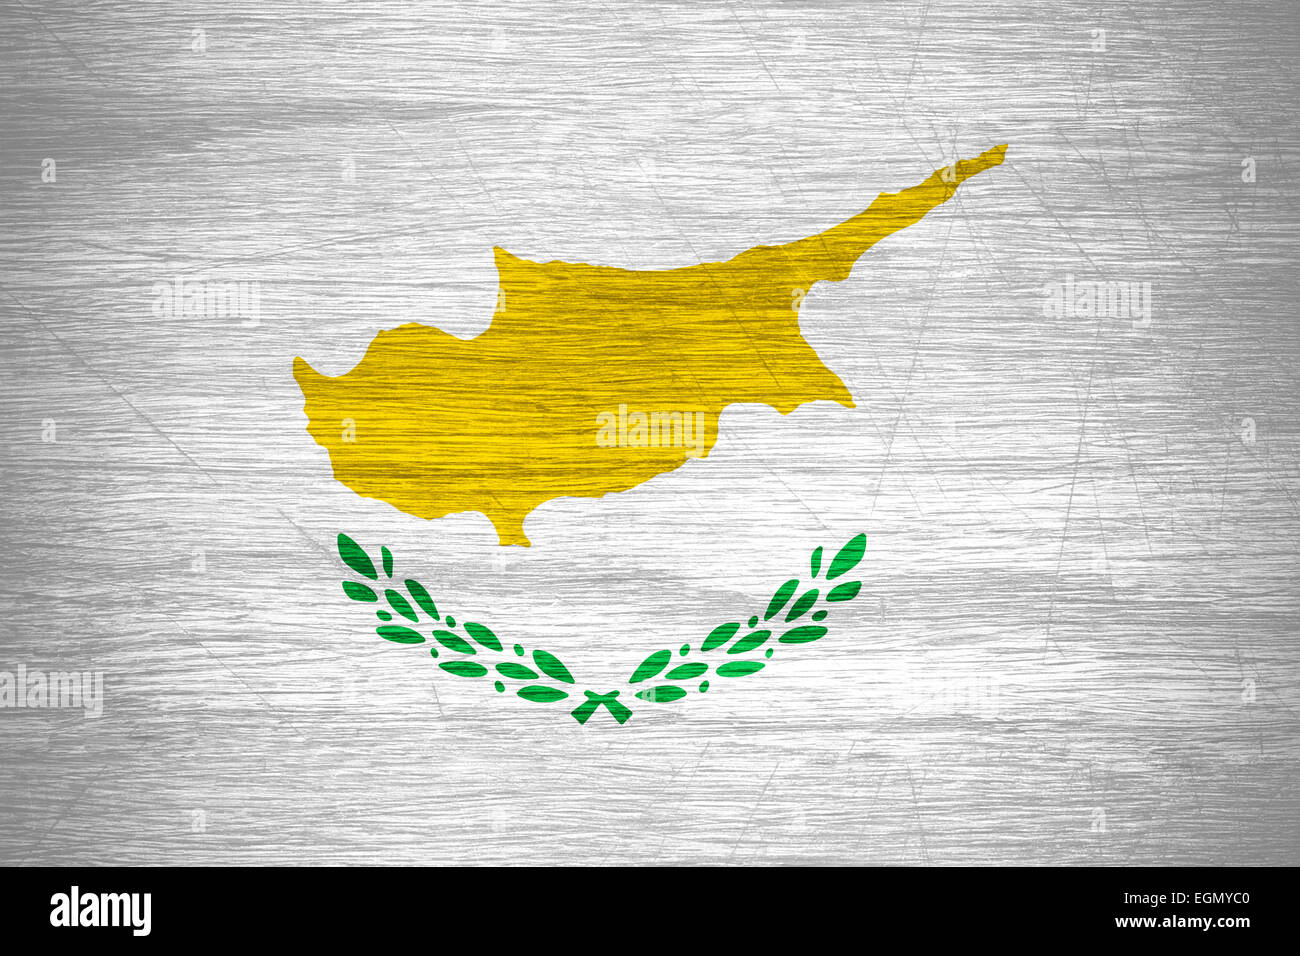 Cyprus flag or banner on wooden texture - Stock Image